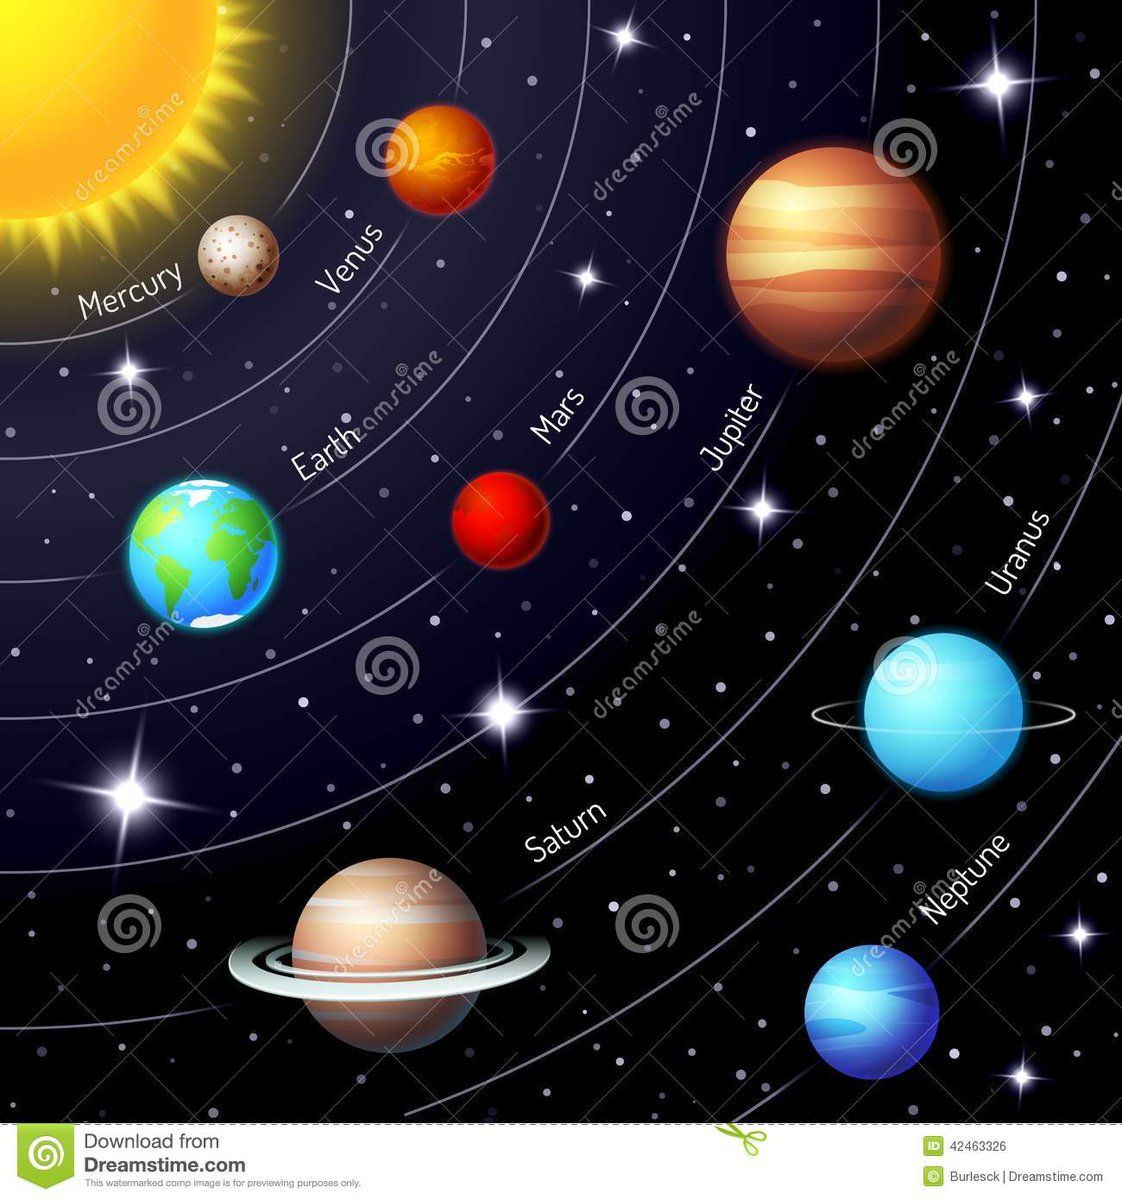 Planets Galaxy Universe Solar System Planets Solar System Images Solar System Projects